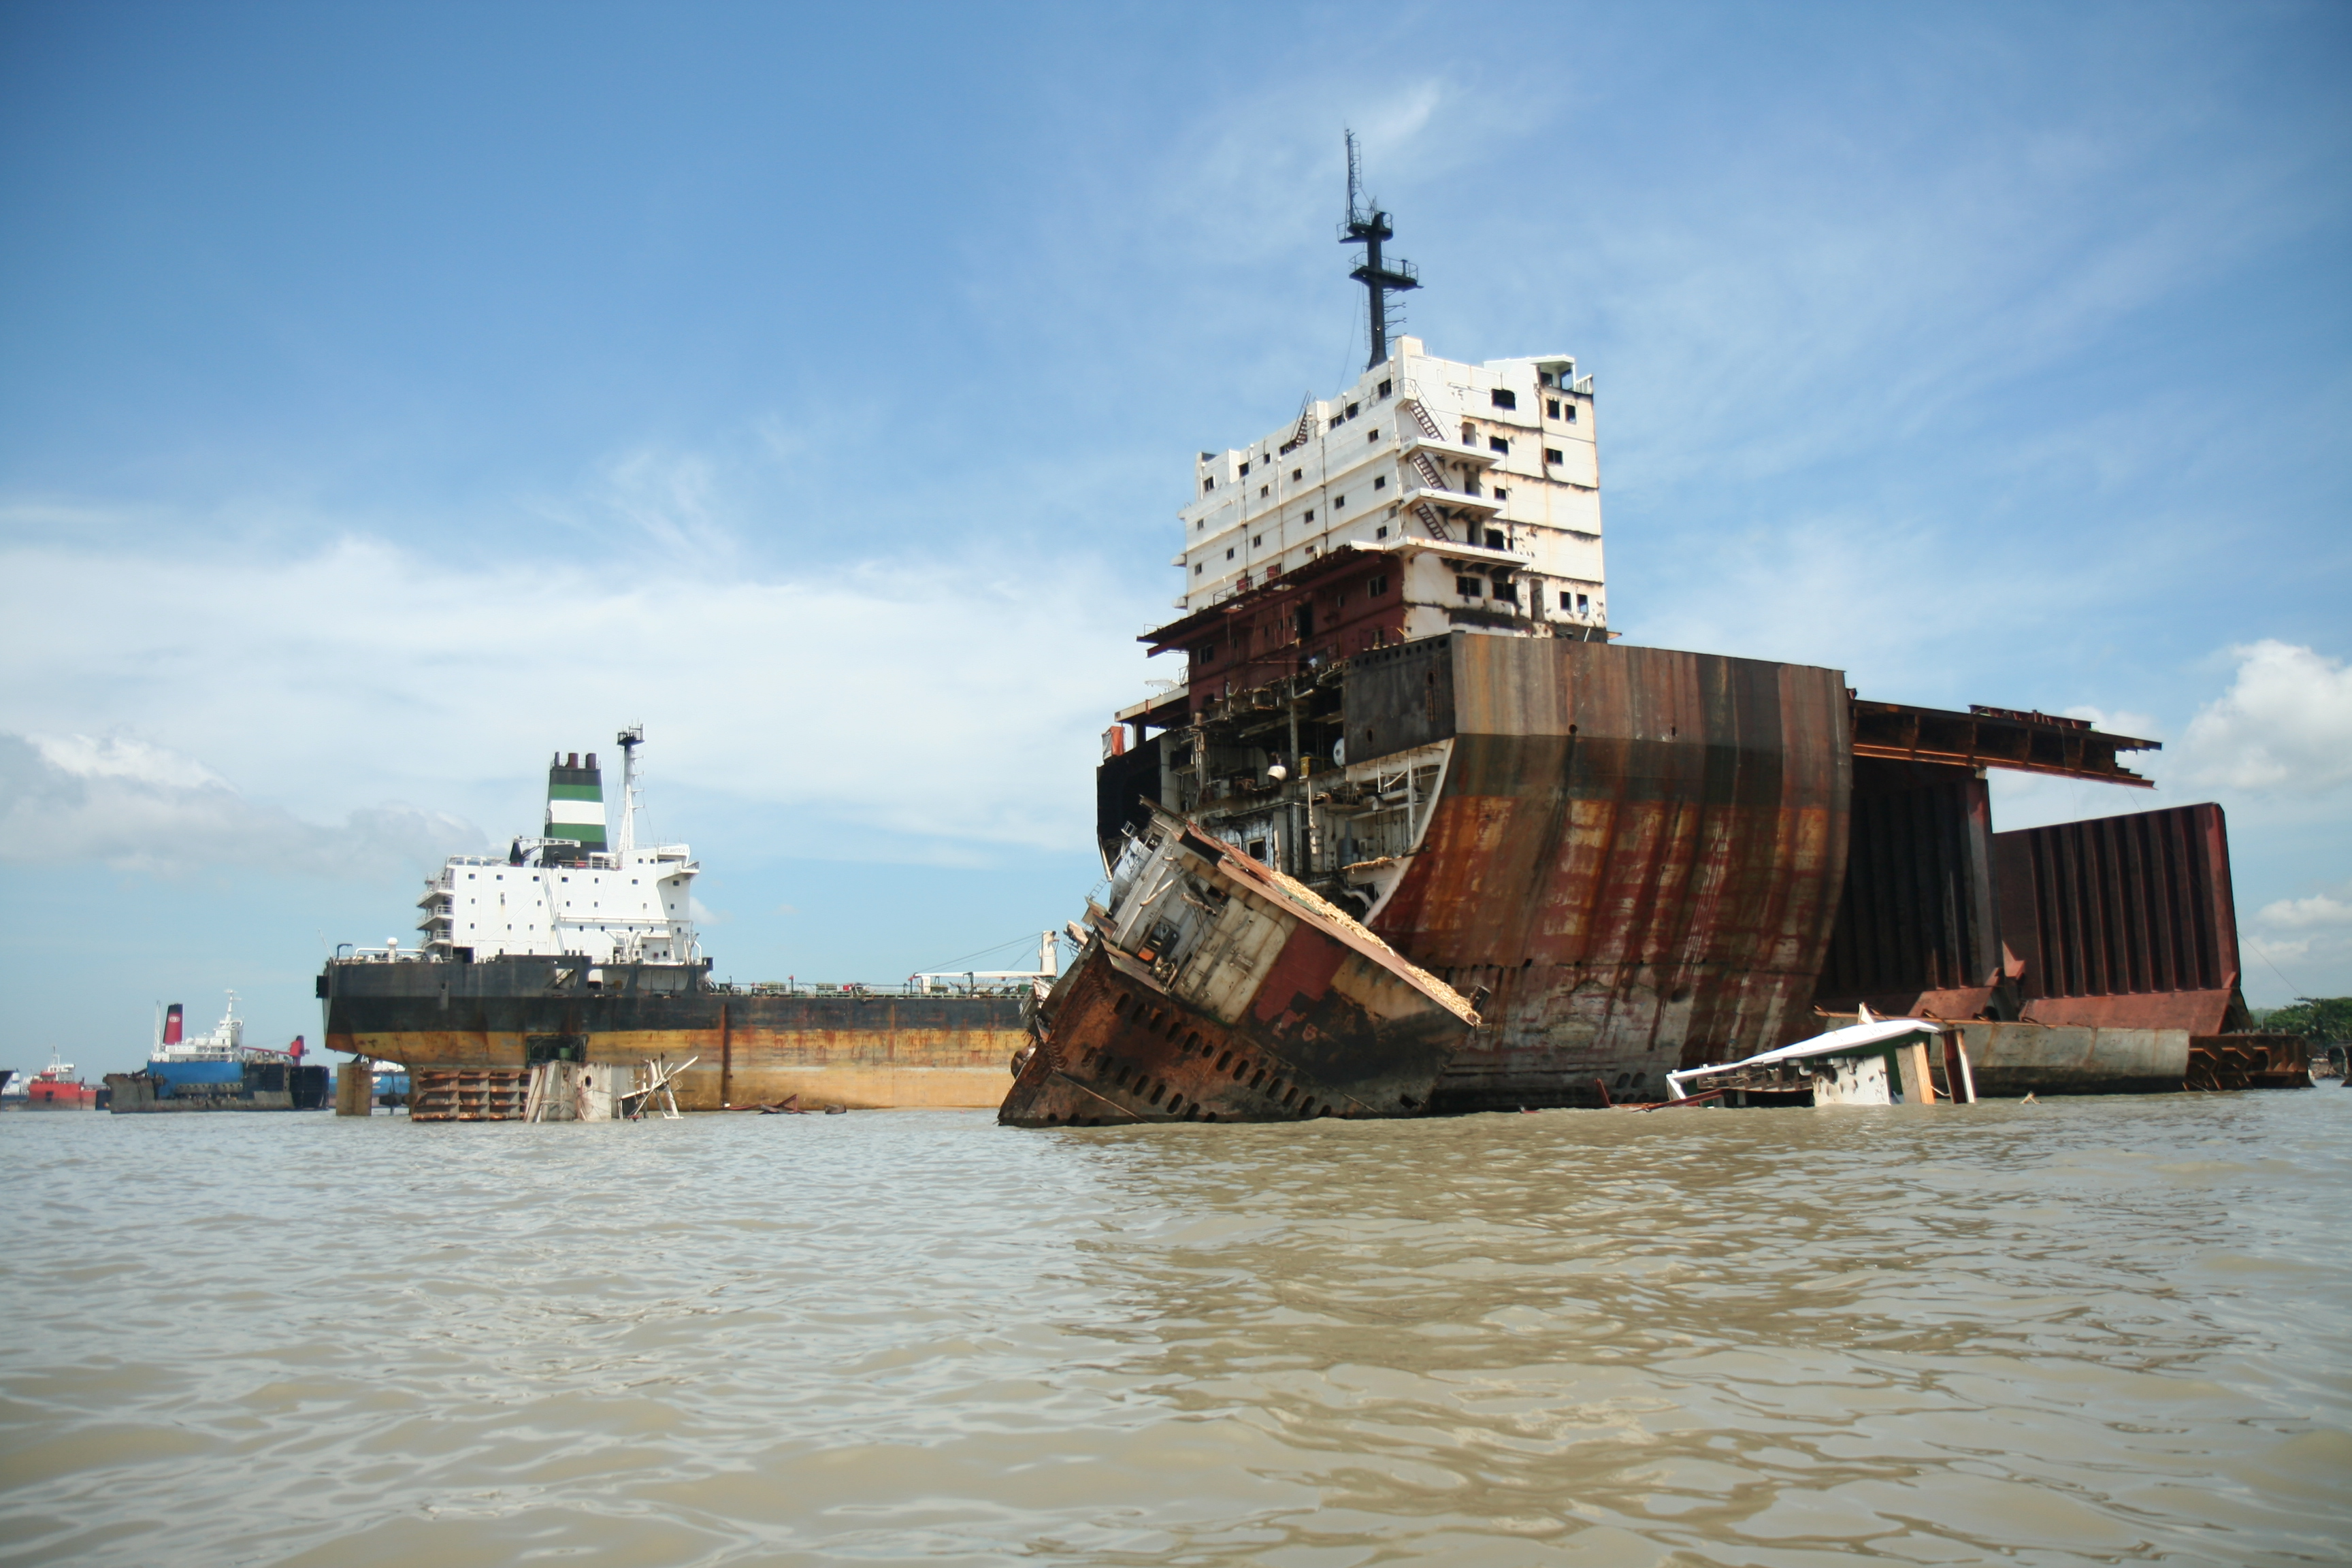 CHITTAGONG SHIP BREAKING BANGLADESH